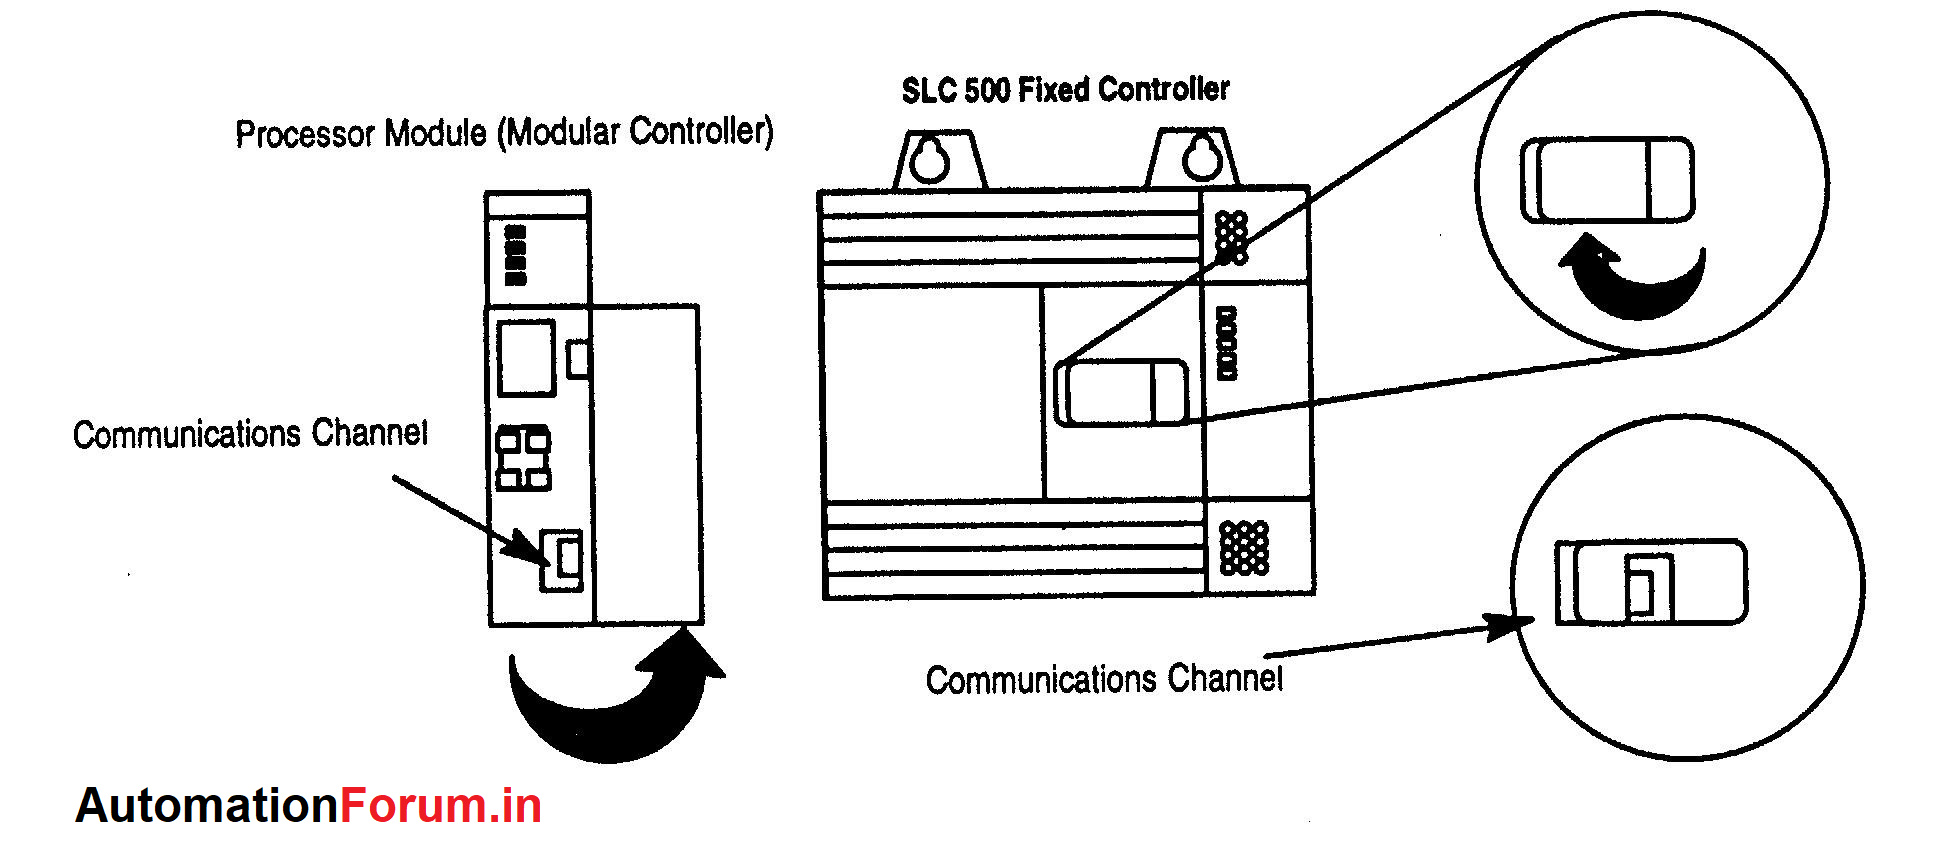 How To Configure And Connect Online A Allen Bradley Plc Slc500